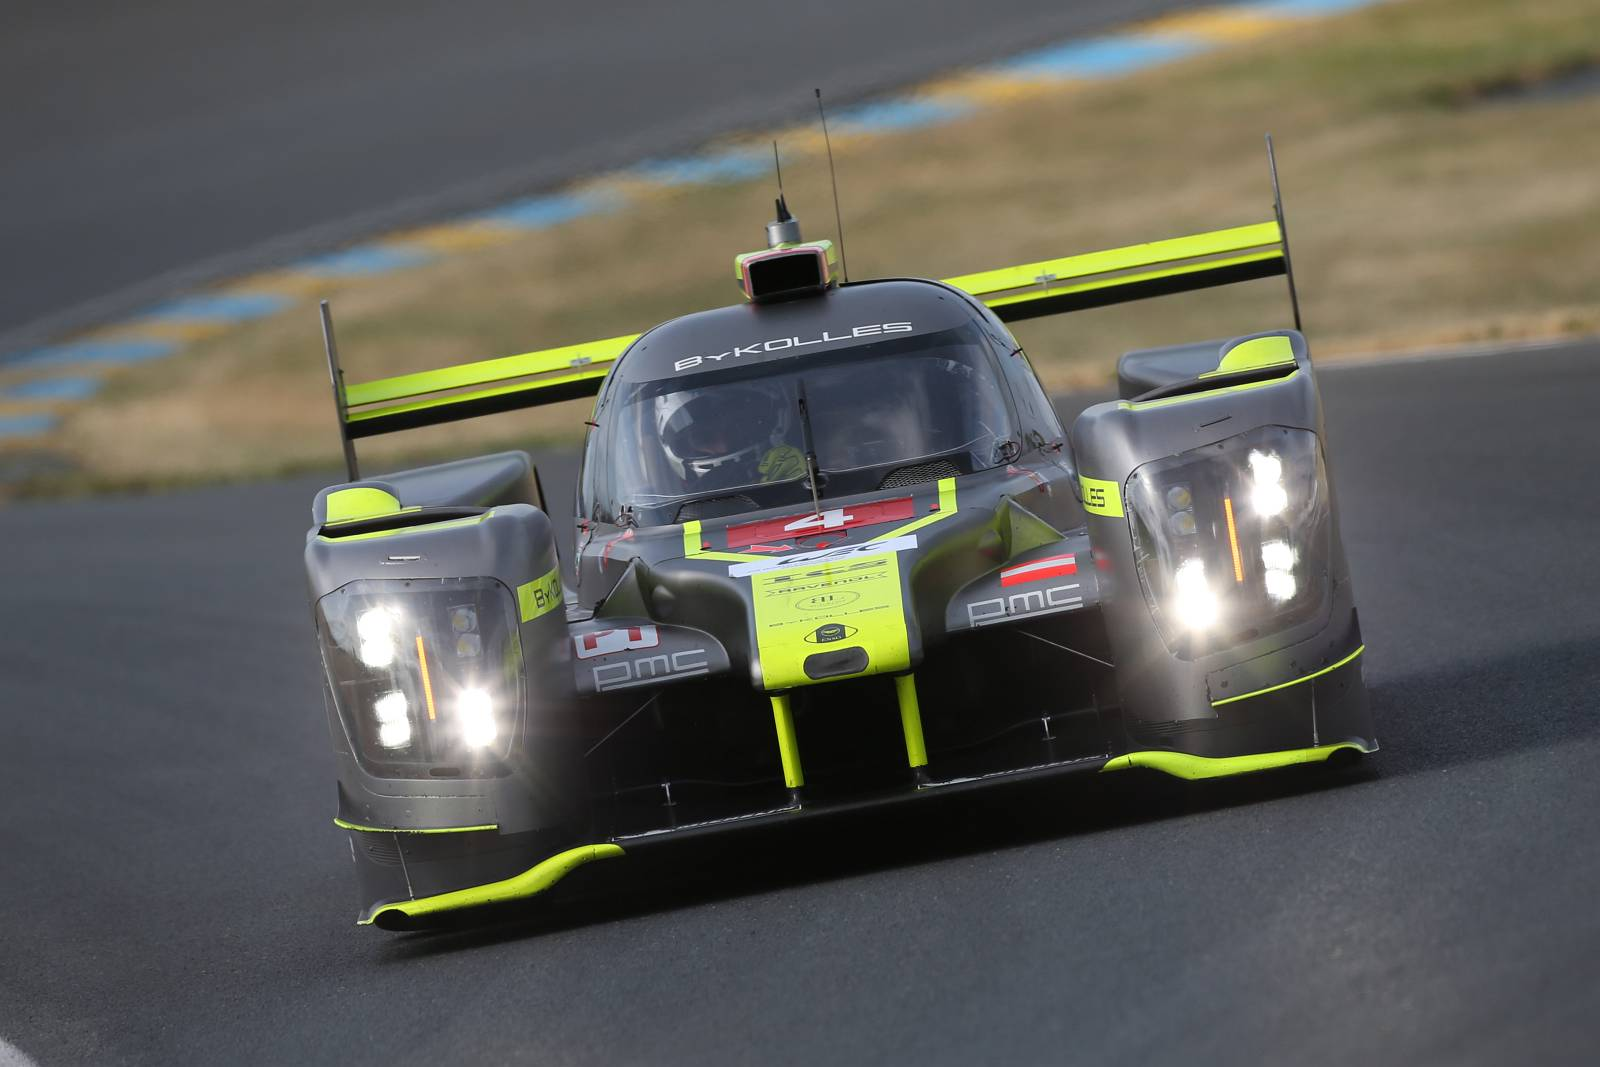 byKOLLES-racing-WEC-test-le-mans-2017-003